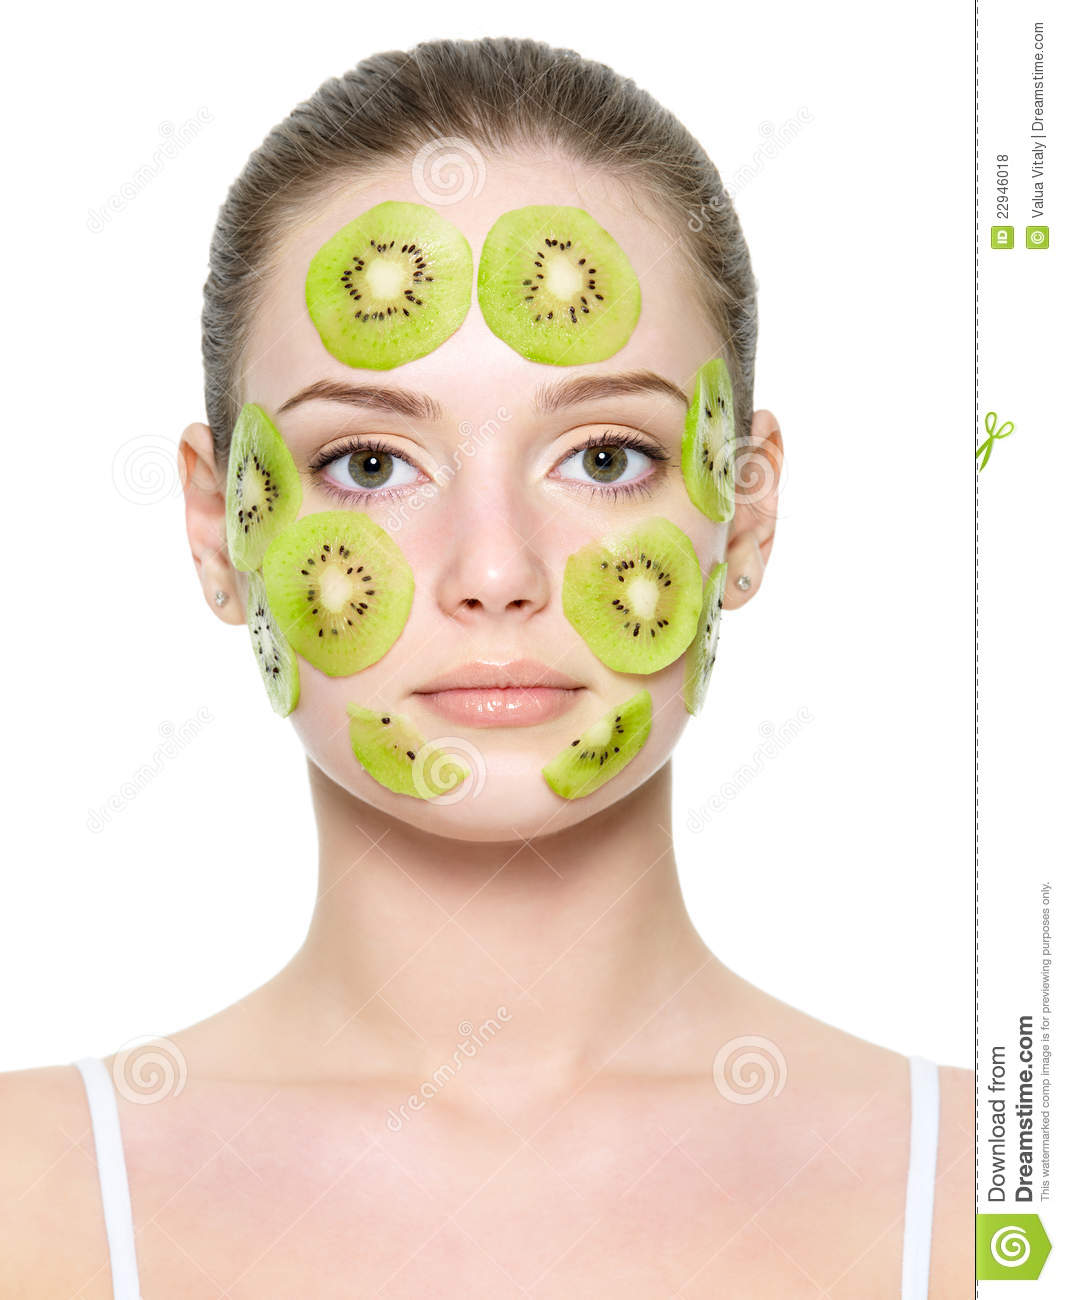 Prompt reply Facial fruit mask not